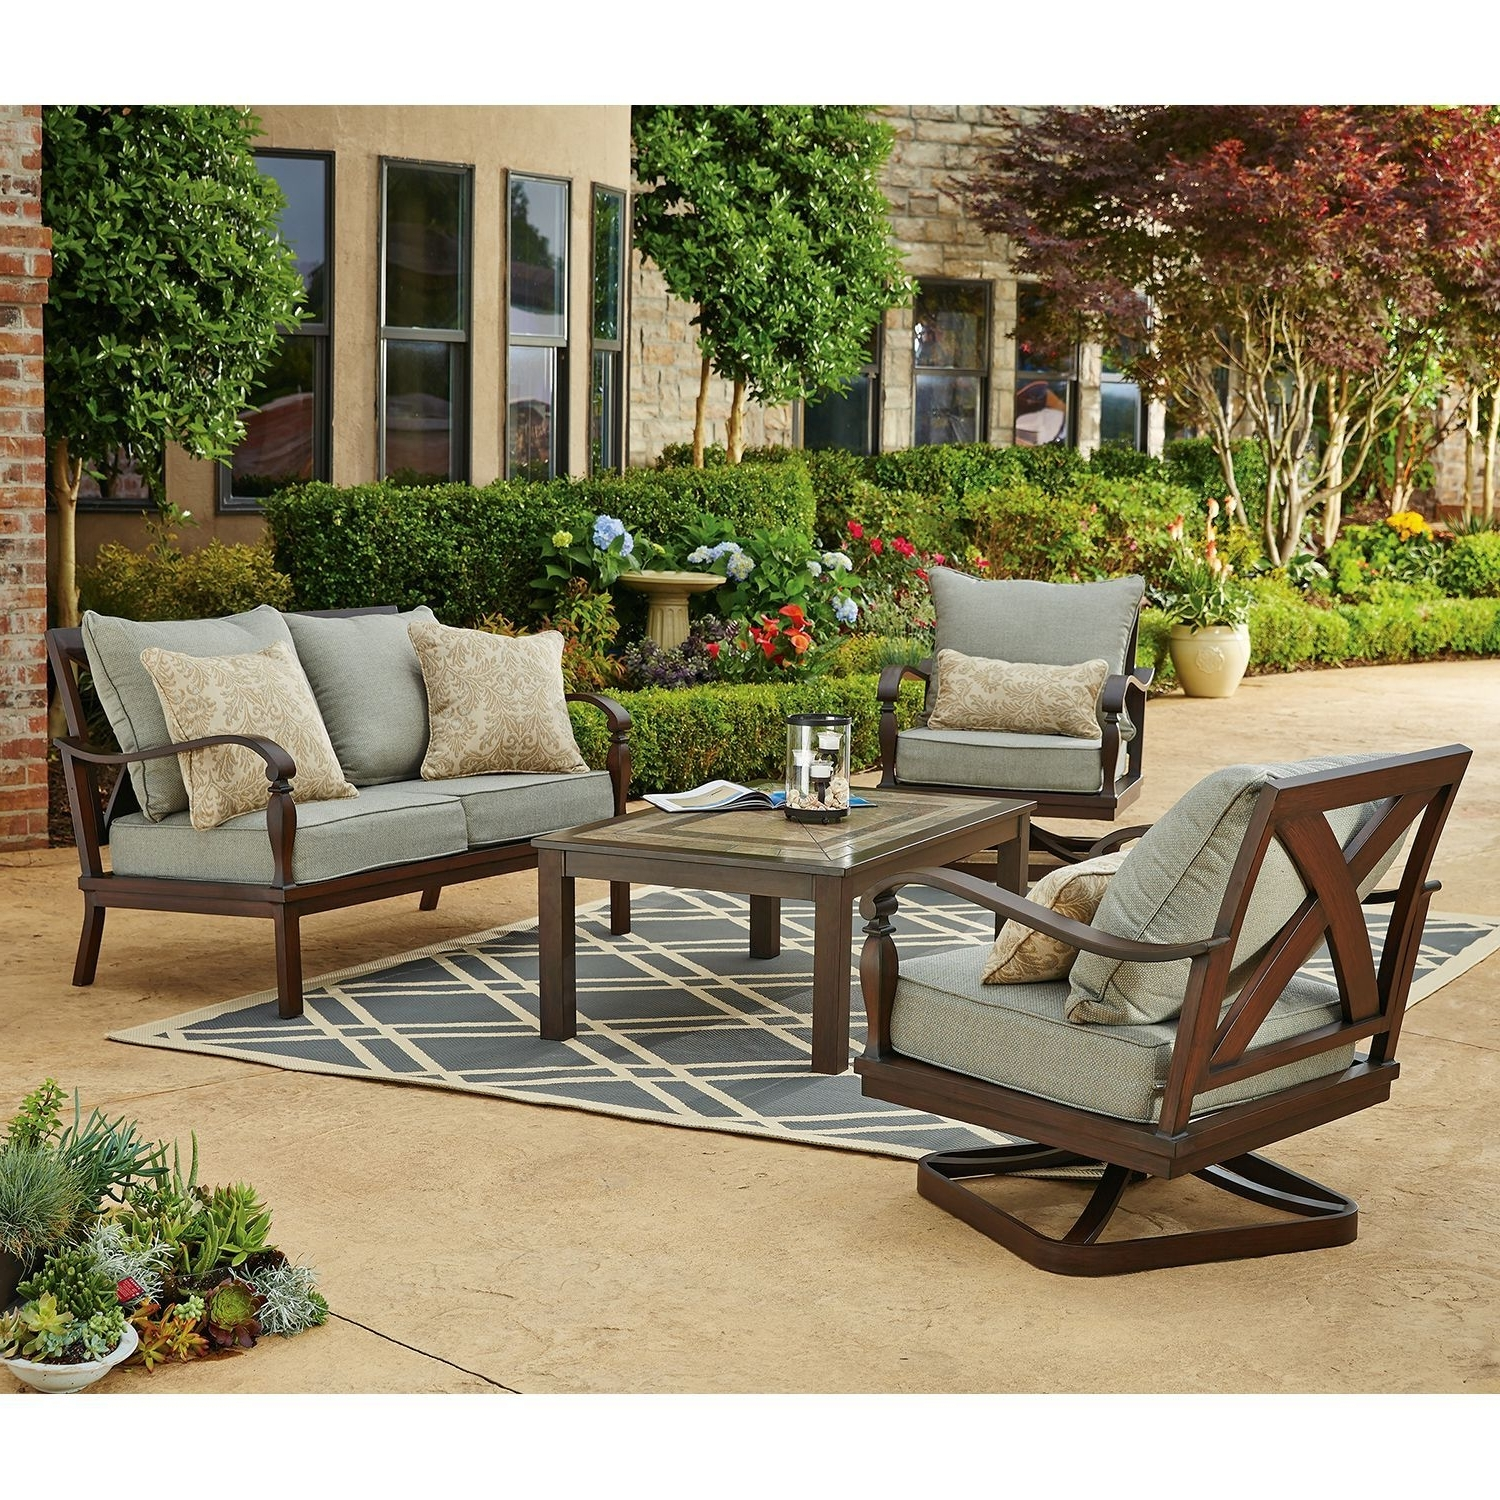 Patios, Outdoor Living And Yard (View 16 of 20)